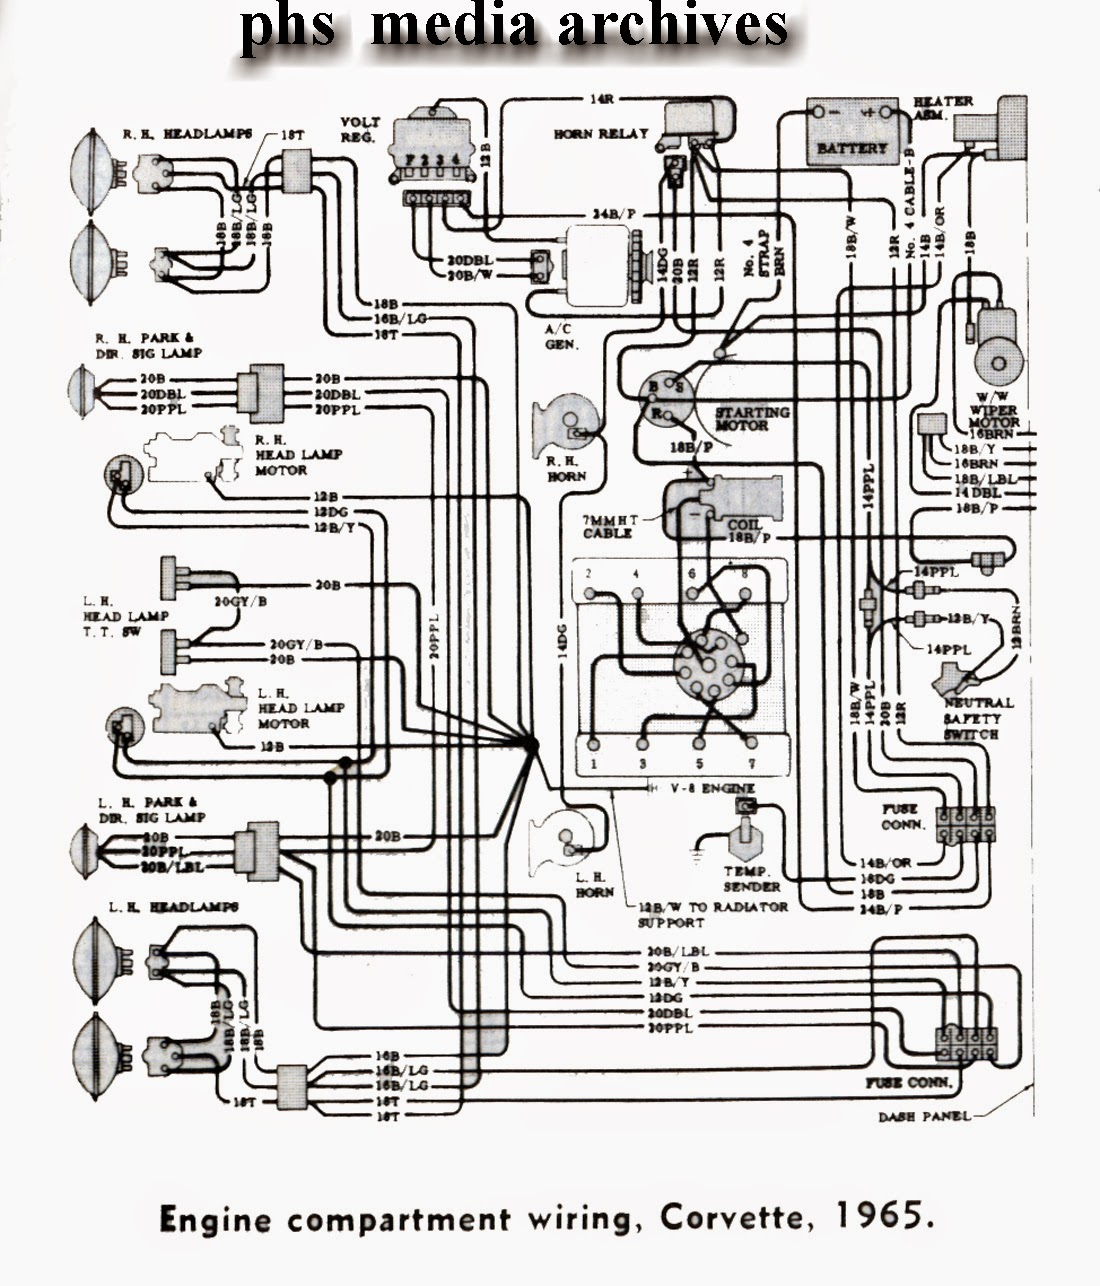 hight resolution of datsun 521 wiring diagram ignition datsun 2000 wiring diagram datsun 521 mod ei distributor and coil wiring photo 521ei